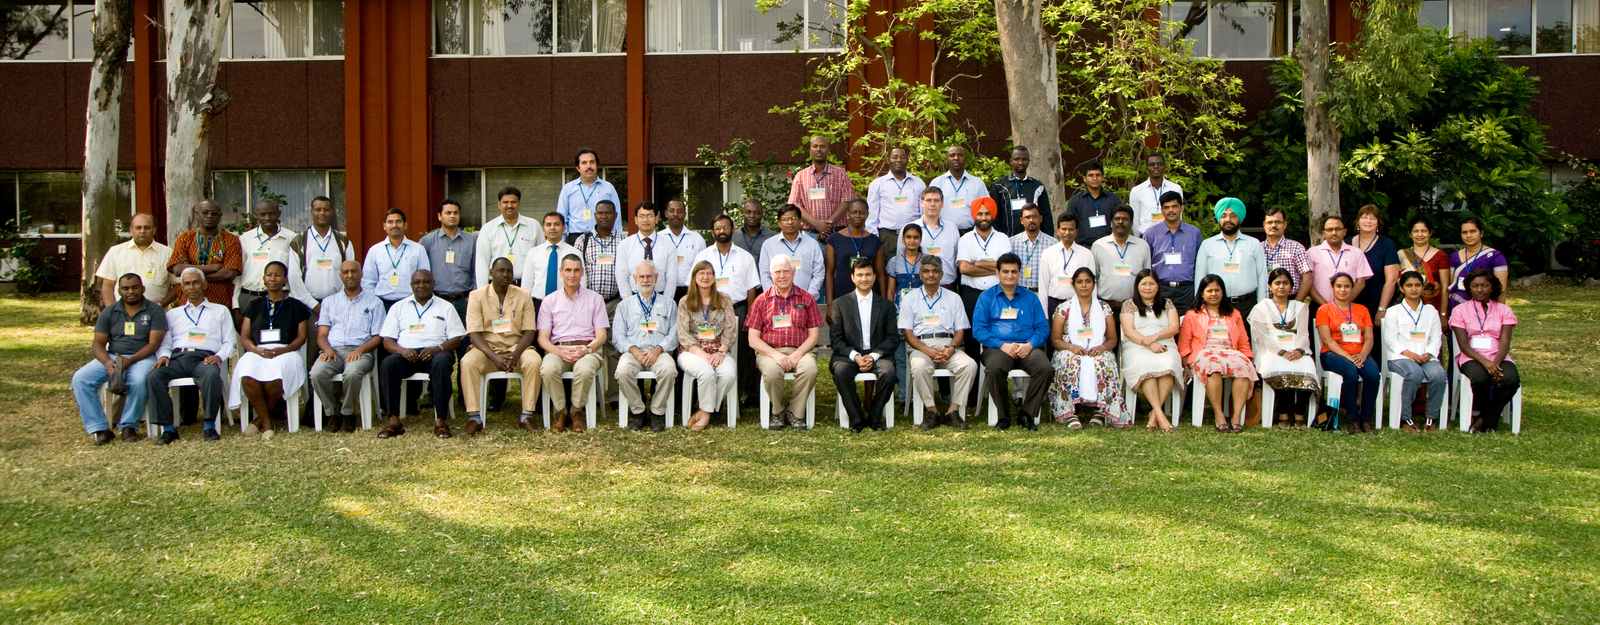 AgMIP Multiple Crop Model Training in India (March 2013)